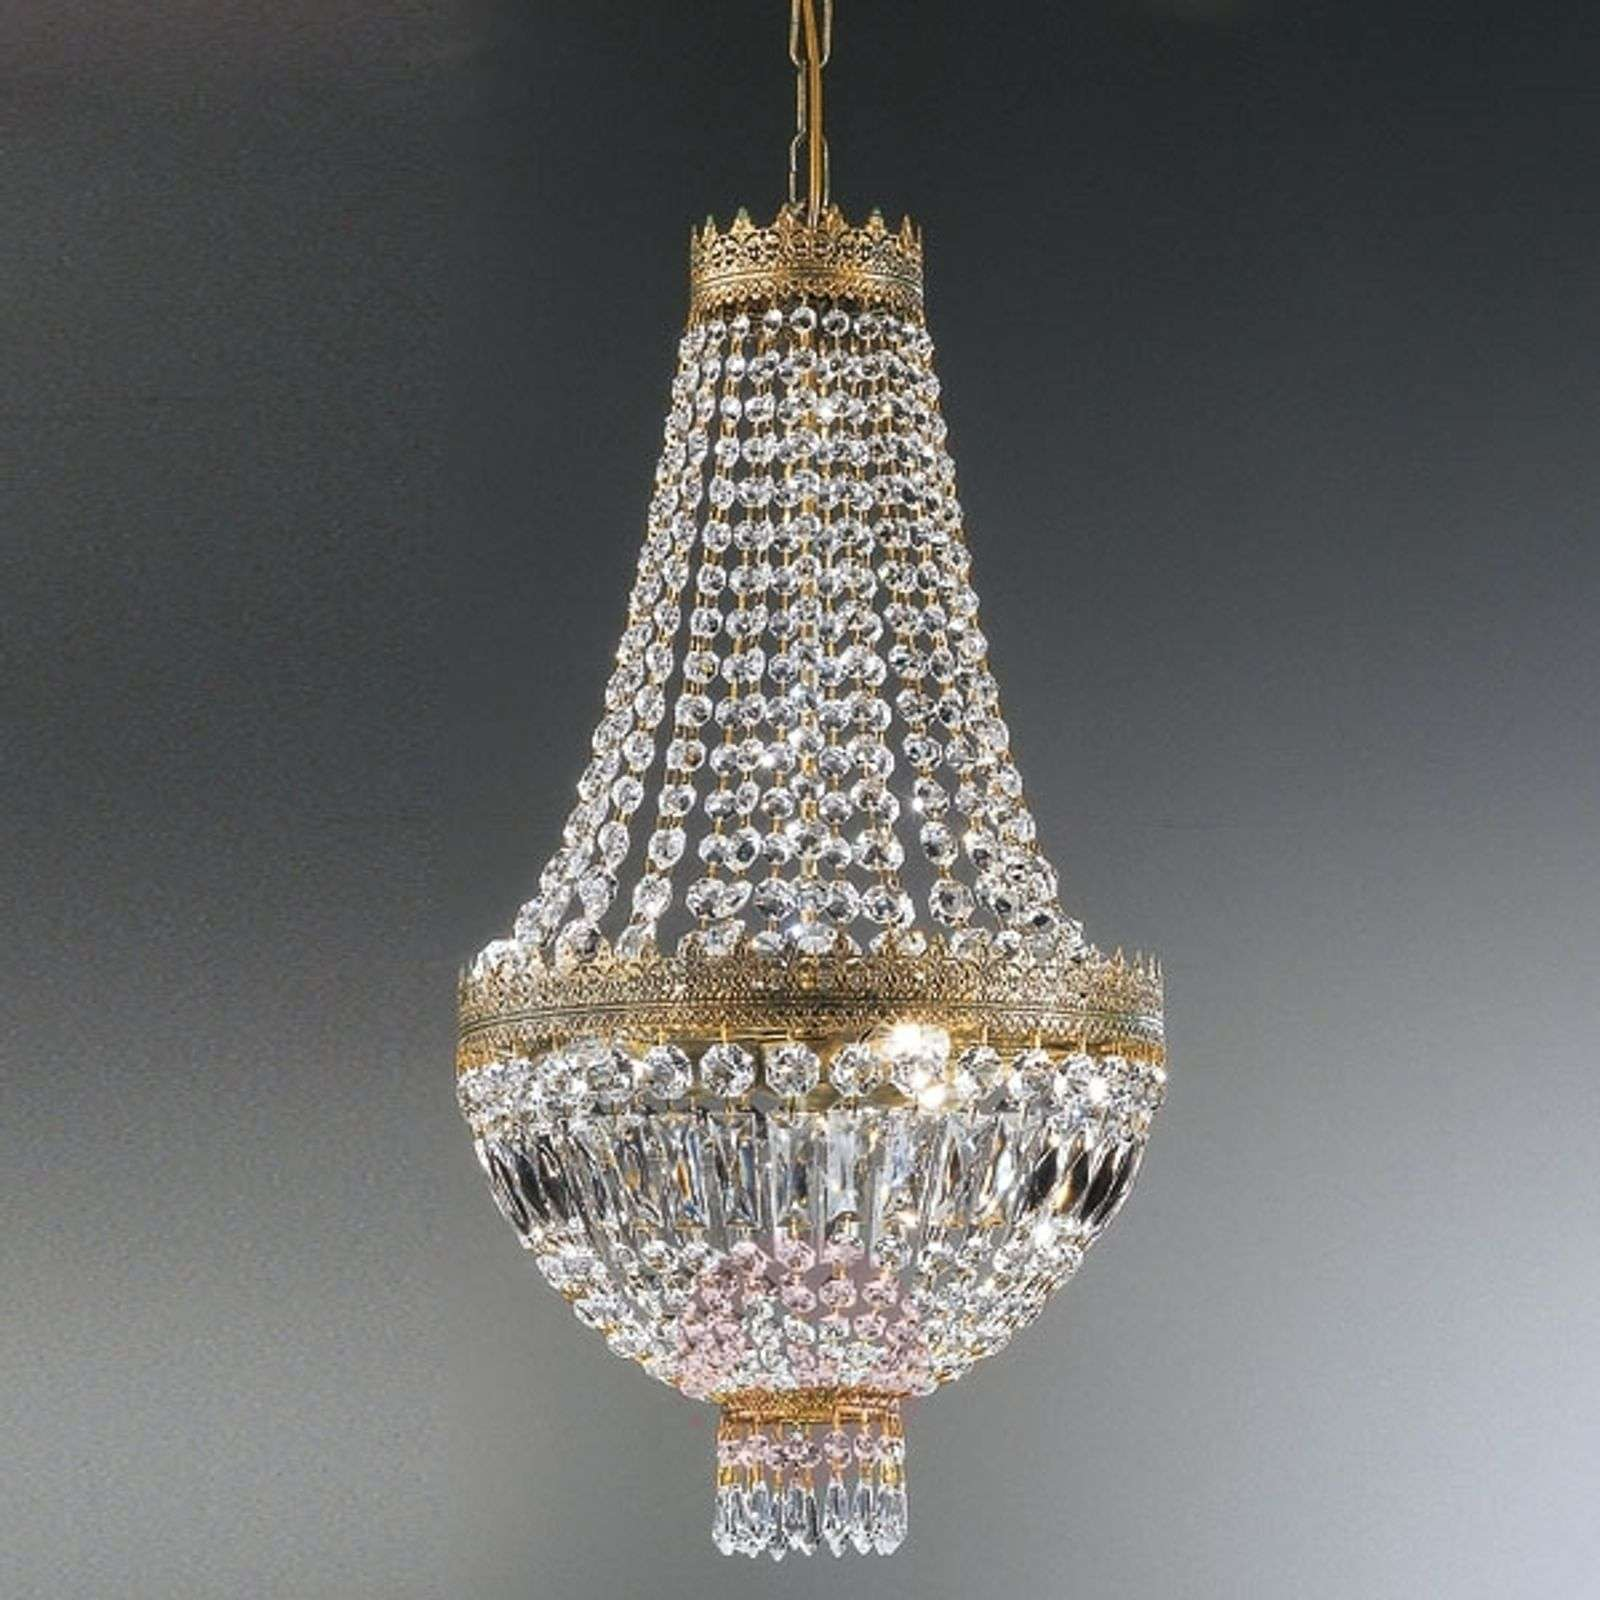 Suspension en cristal CUPOLA-5505245X-01